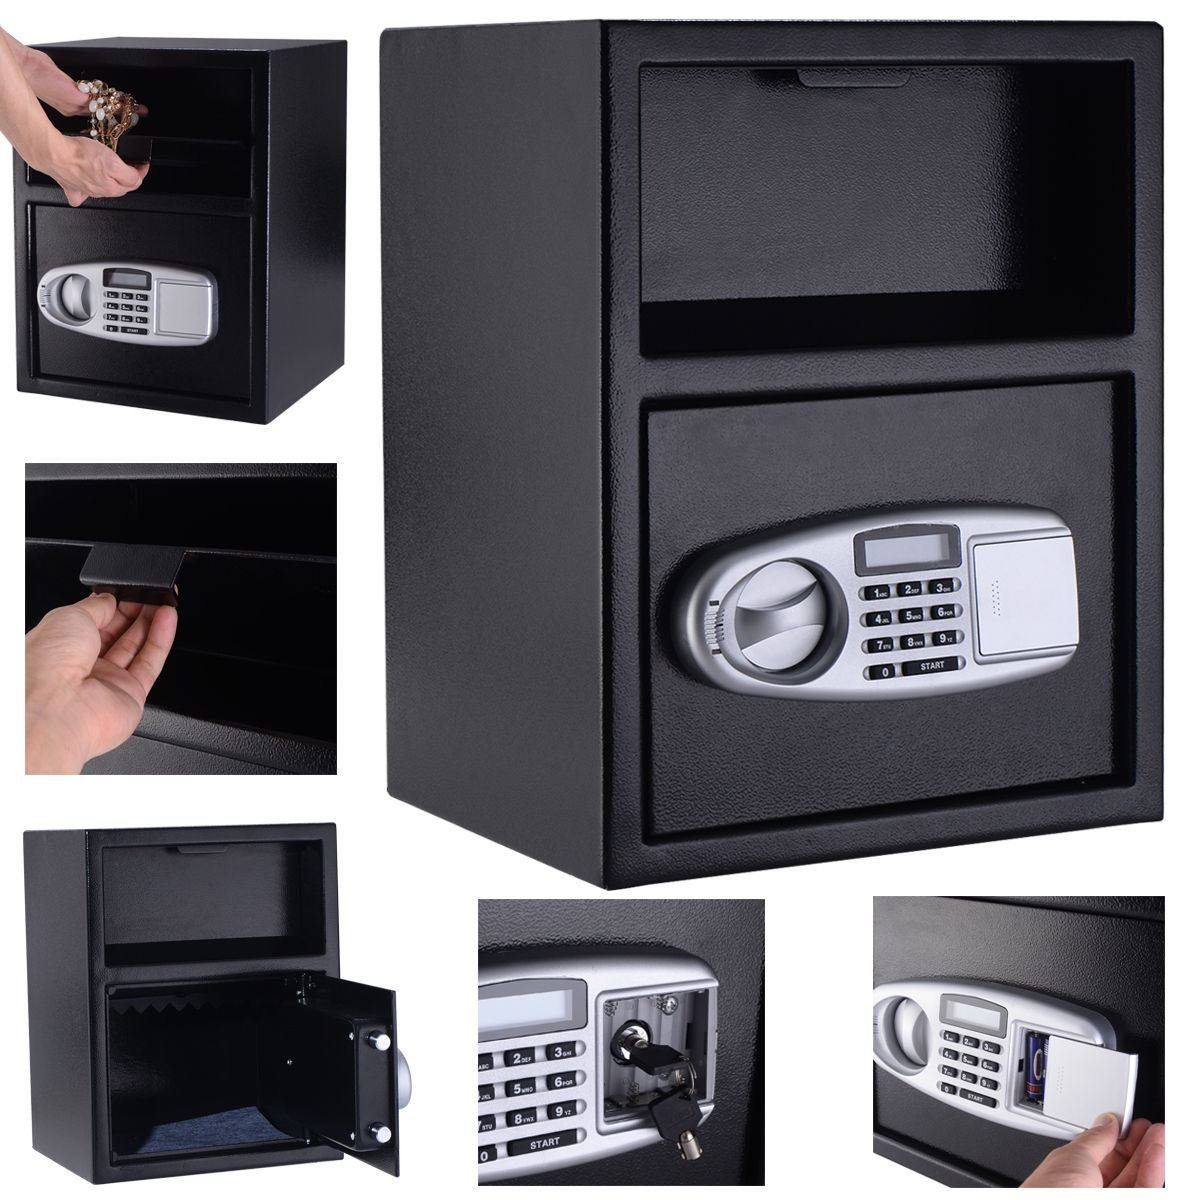 MasterPanel - Digital Safe Box Depository Drop Deposit Front Load Cash Vault Lock Home #TP3281 by MasterPanel